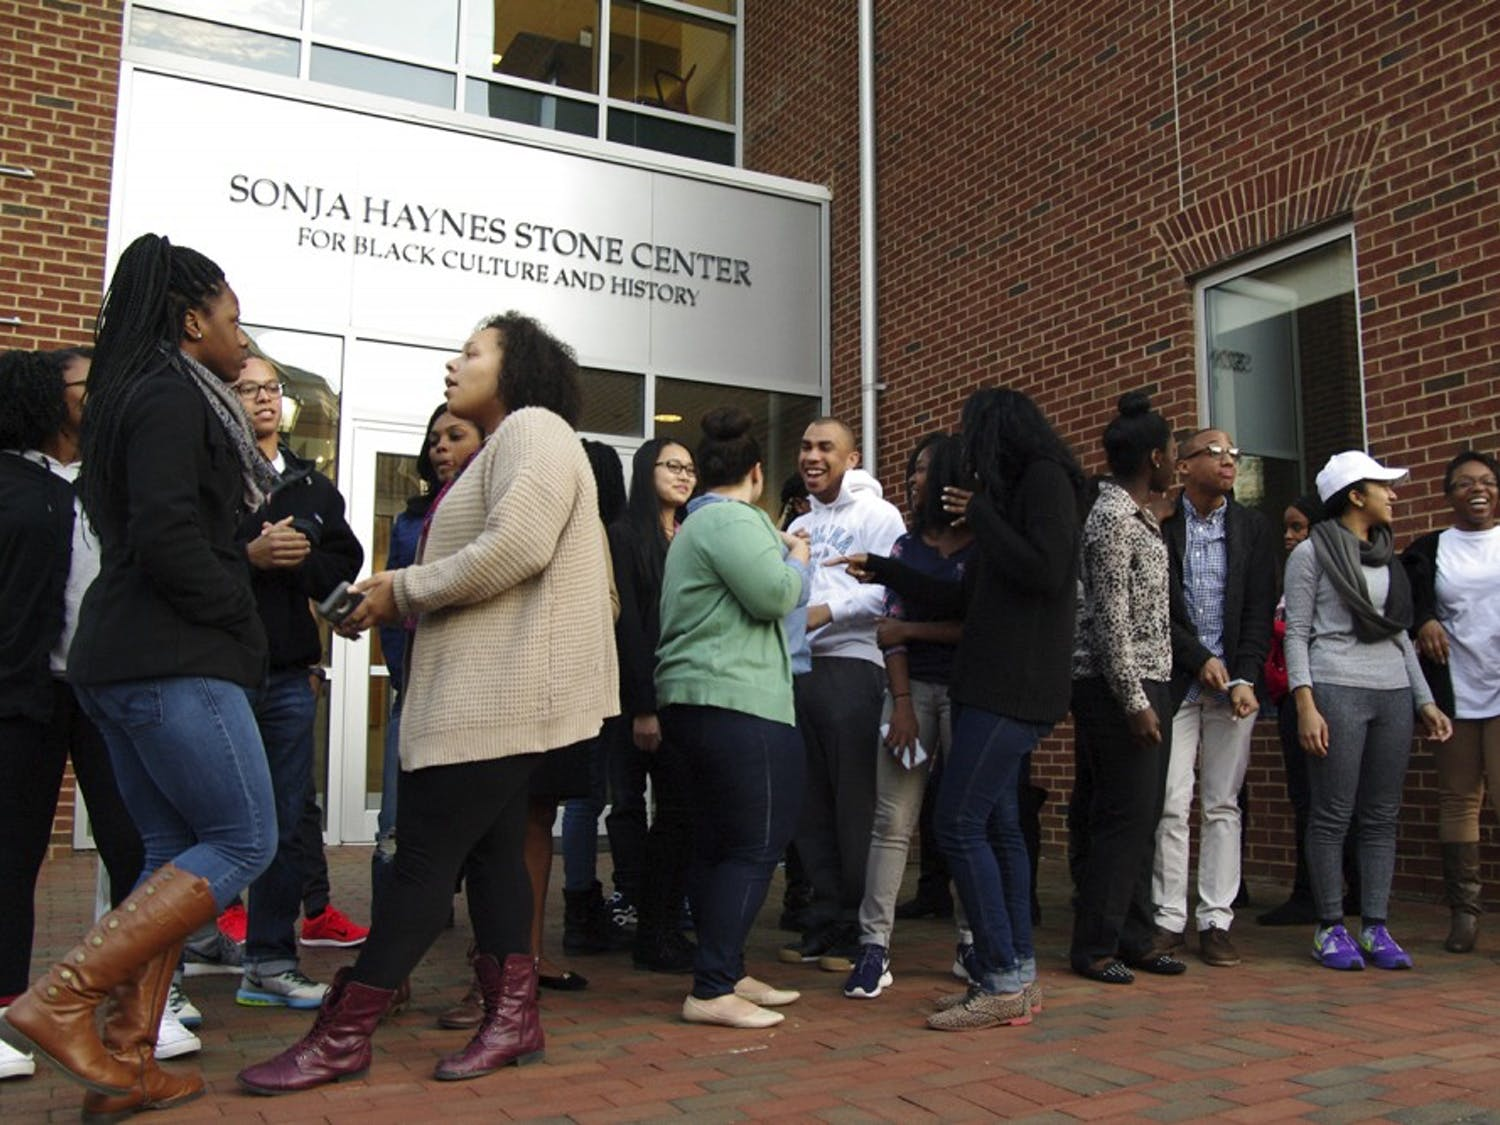 """""""He Was a Poem, He Was a Song"""" will be held at The Sonja Haynes Stone Center from 6 to 7:30 p.m. on Tuesday, Jan. 21. The celebration is a free event open to the public."""